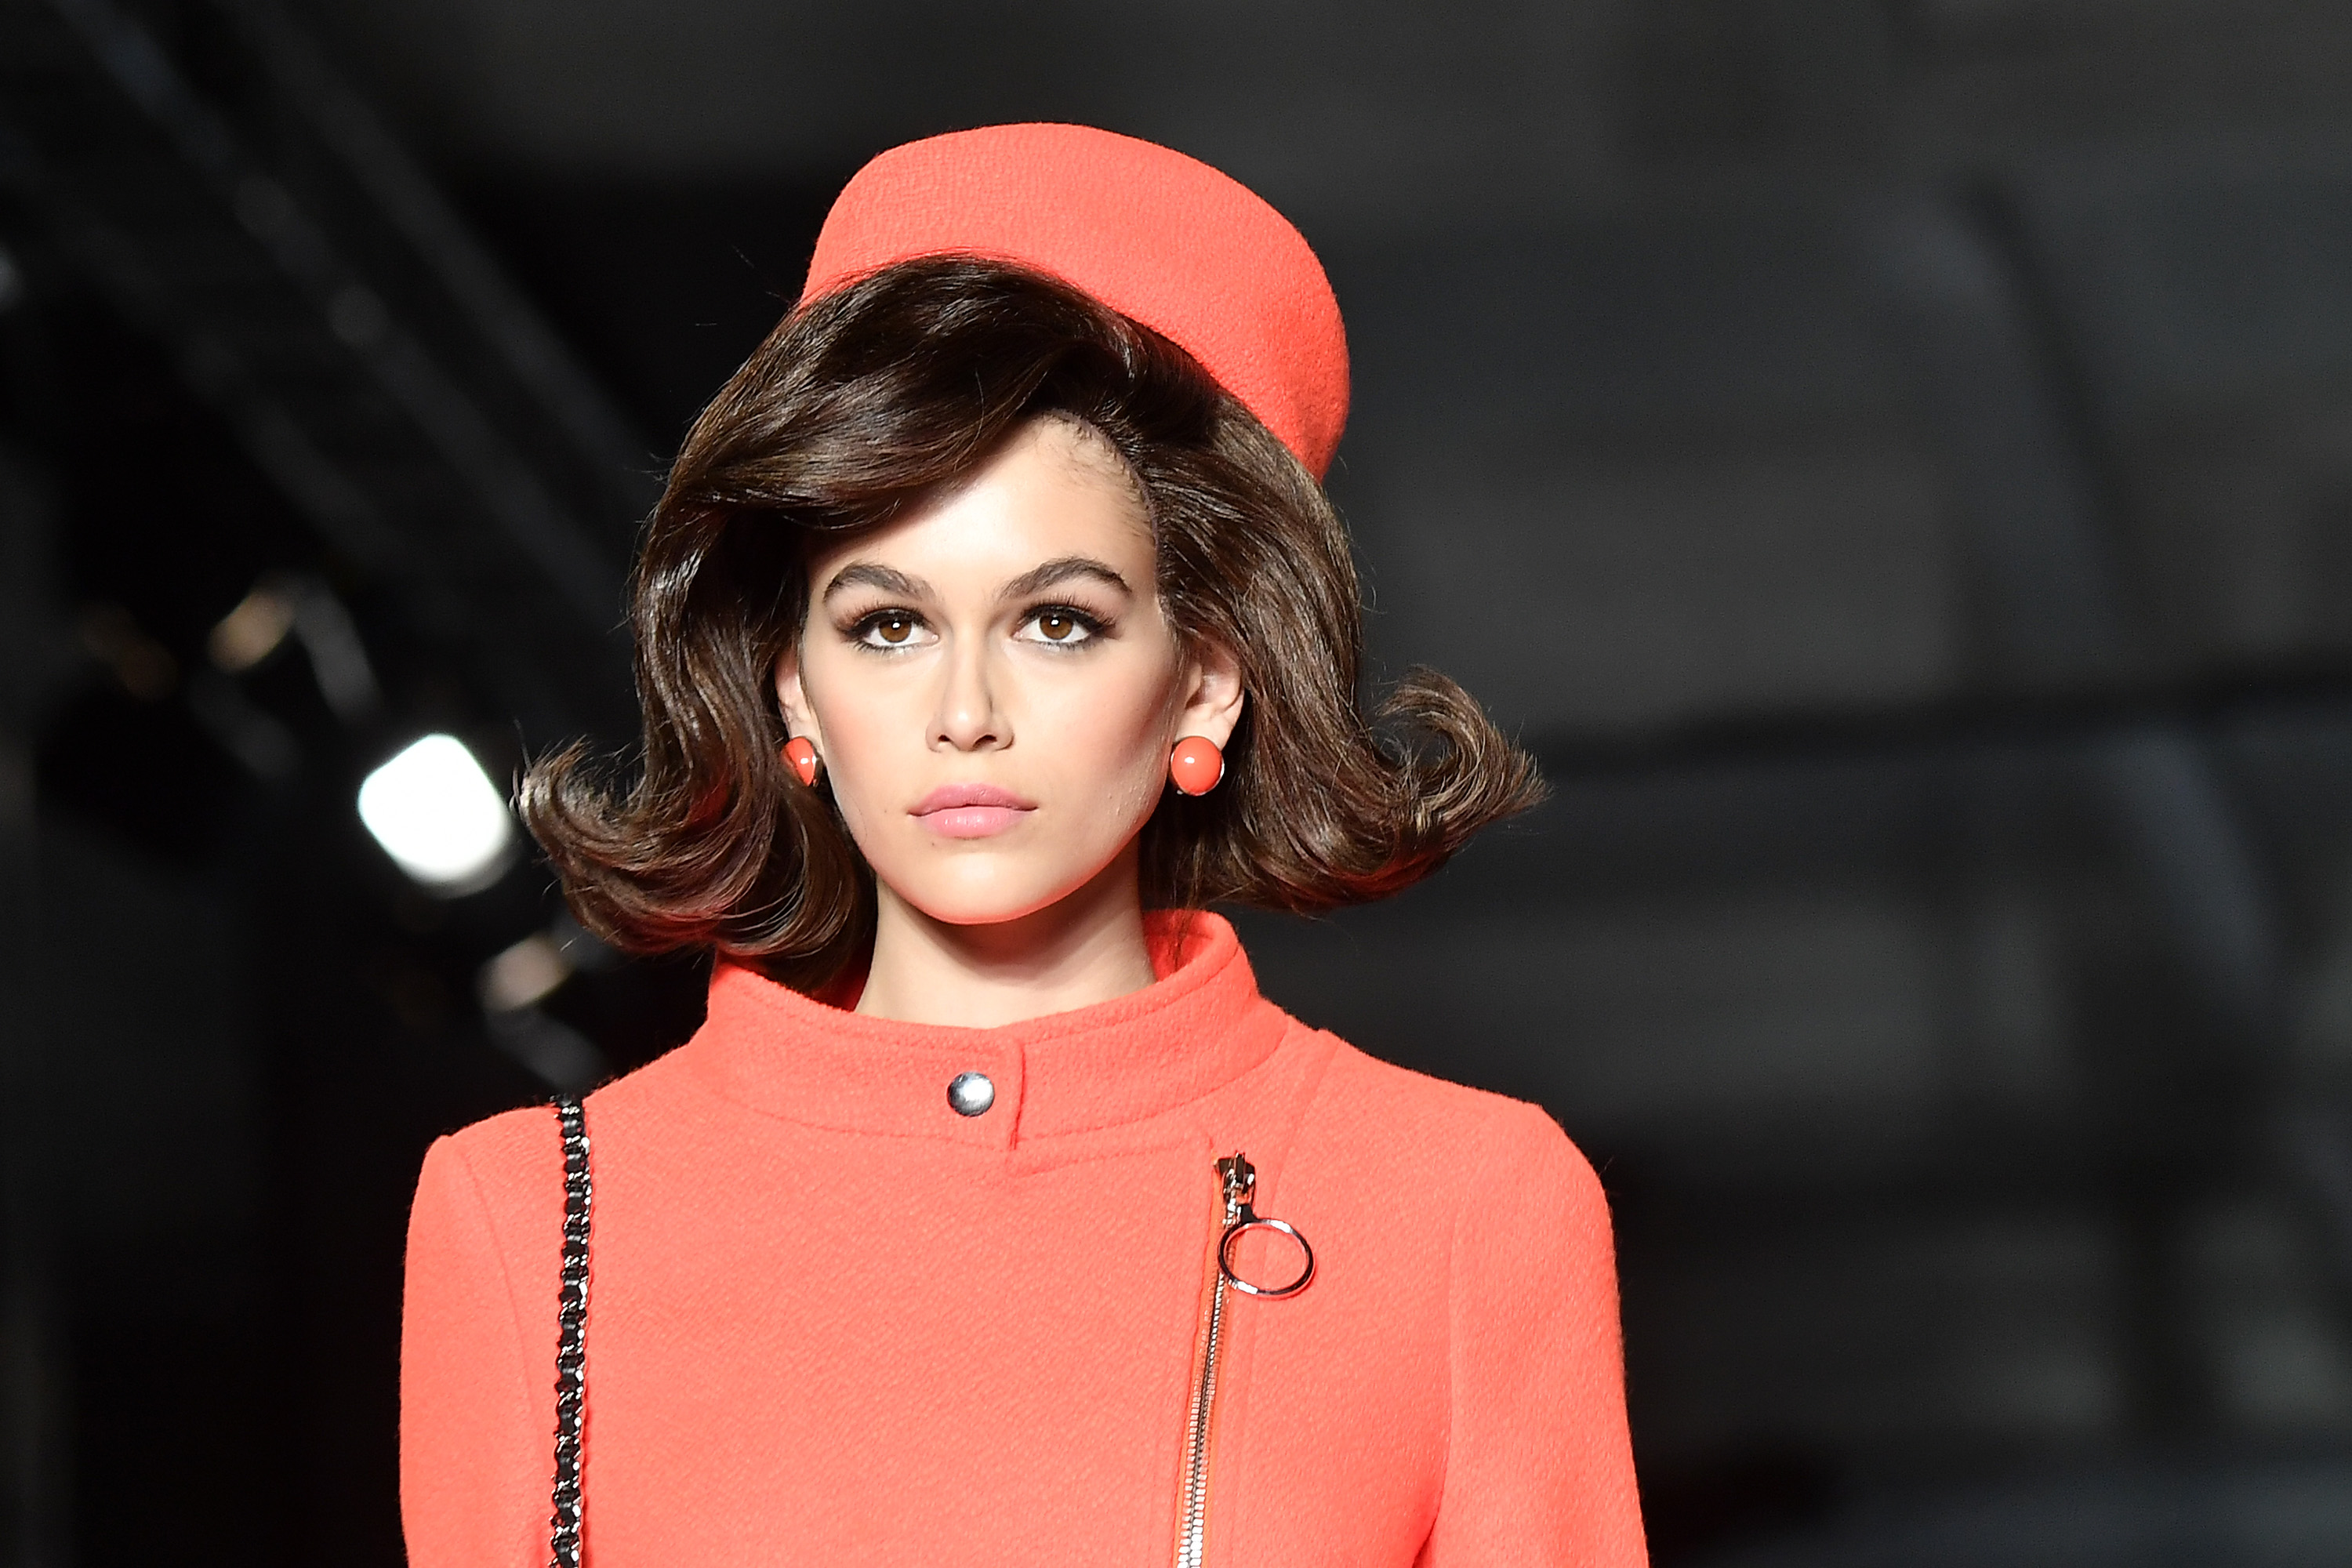 There's no mistaking the timeless appeal and legendary glamour of Jacqueline Kennedy Onassis. Although it's been decades since the late First Lady held court in Washington D.C, her style influence continues to live on. <br> <br> Point in case, Moschino's A/W'18 show at Milan Fashion Week on Thursday.<br> <br> The luxury label's creative director, Jeremy Scott, turned back time as he sent models-of-the-moment Gigi and Bella Hadid and Kaia Gerber down the runway dressed as Jackie O look-alikes.<br> <br> The star-studded line-up -which also included South Sudan-born Aussie model, Duckie Thot, as well as Victoria's Secret angel Joan Smalls – received the complete Jackie O works, from her prim pastel skirtsuits and matching pillbox hats, to her winged cat eye and curvy bob.<br> <br> Scott's take on fashion's favourite first lady and the swinging '60s was quirky, colourful and cool at a time when politics is anything but.<br> <br> Click through to see all the highlights of Moschino's /AW '18 show.